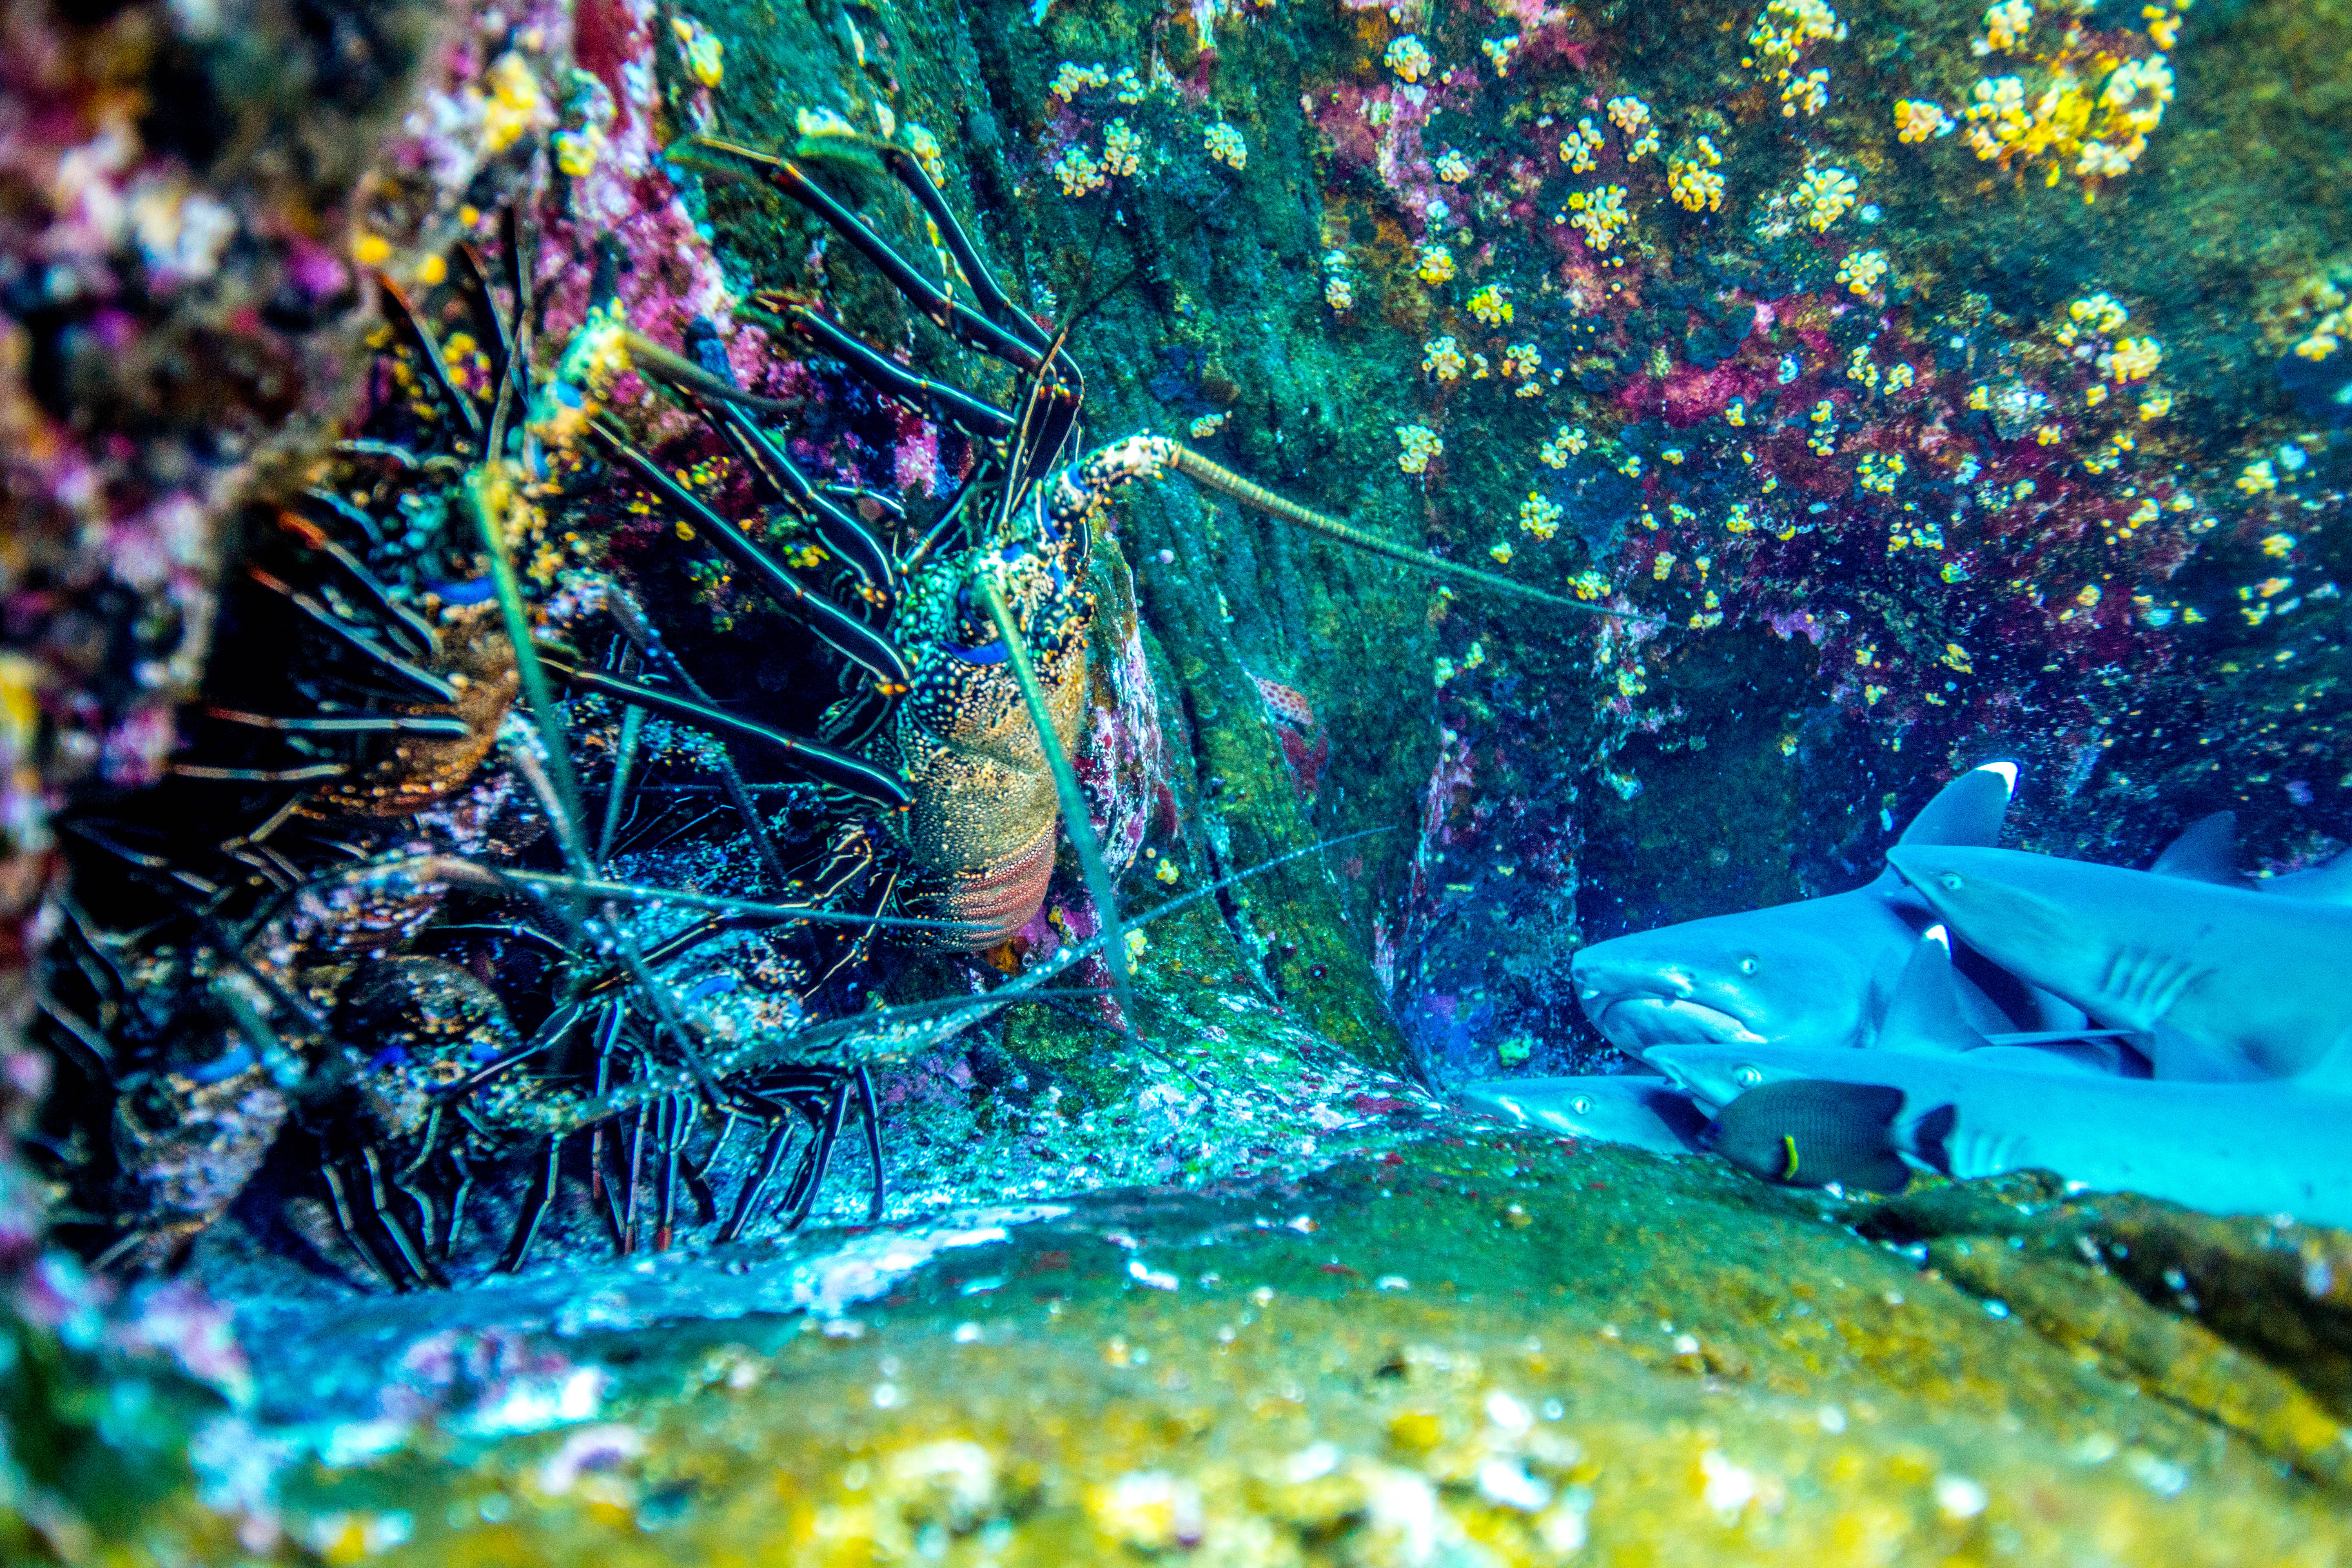 Colorful Crayfish and sharks